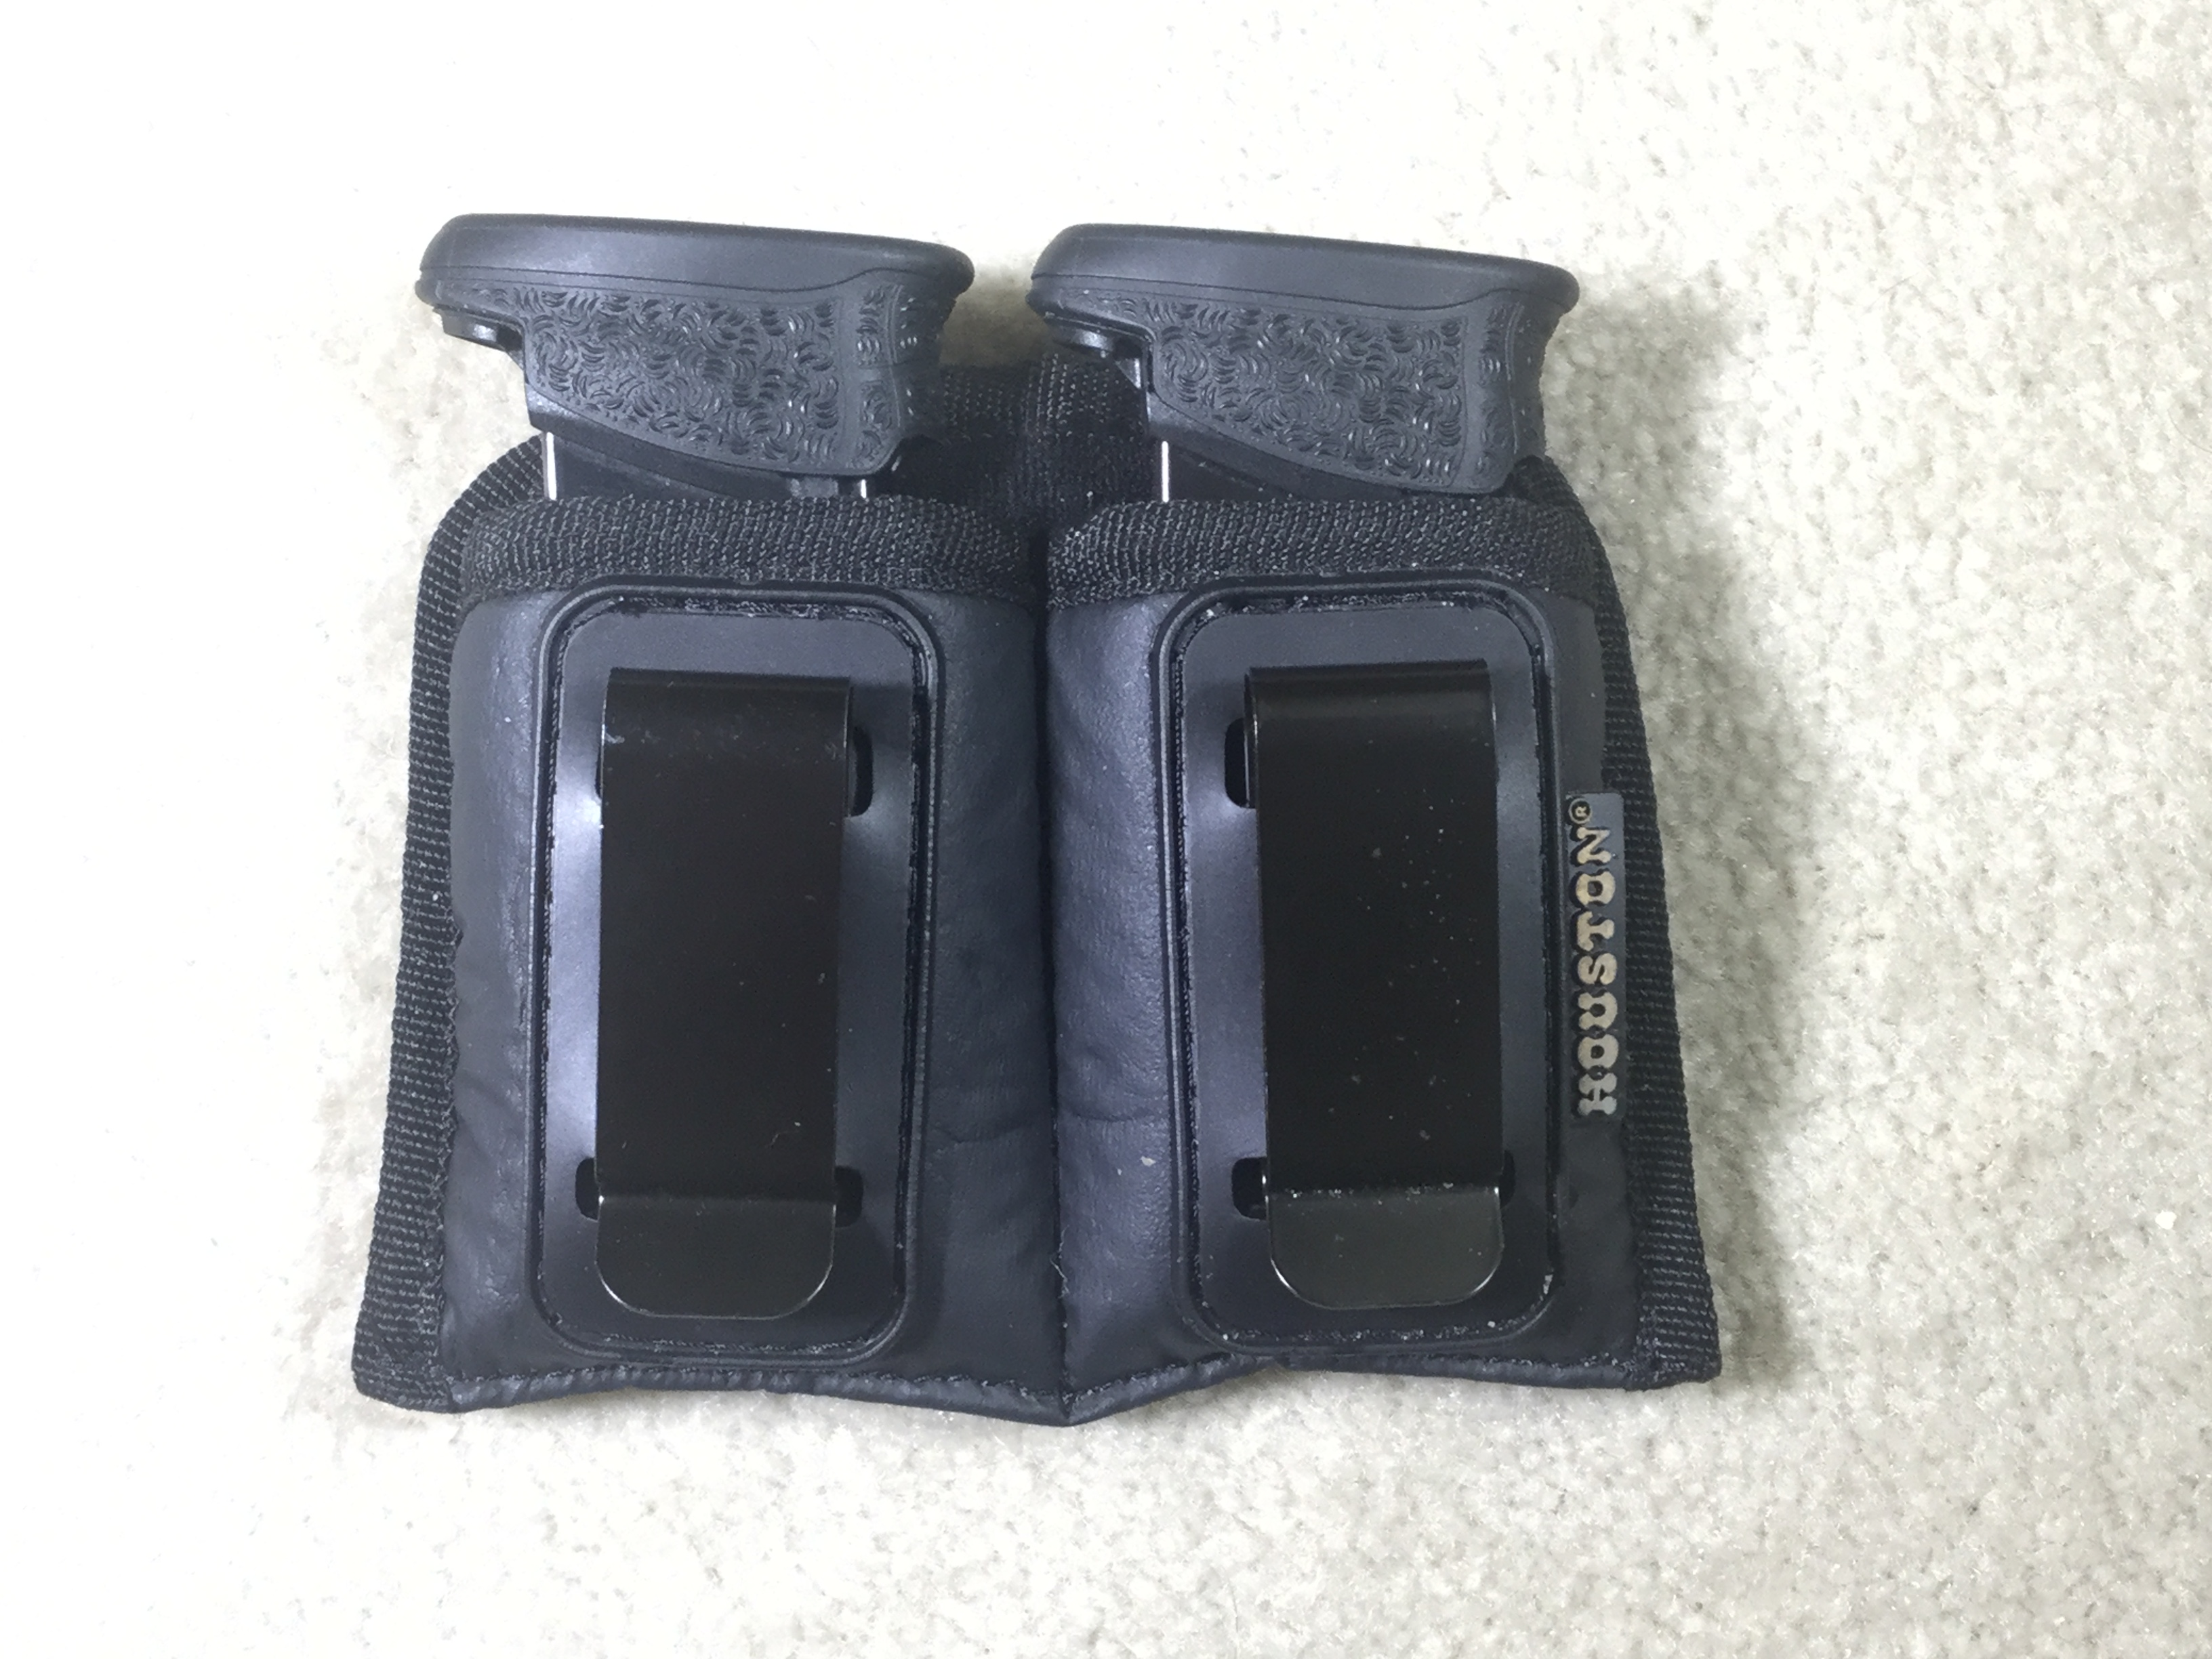 IWB Holster for subcompact pisand two IWB magazine carriers for single stack 9mm mags-img_1128.jpg